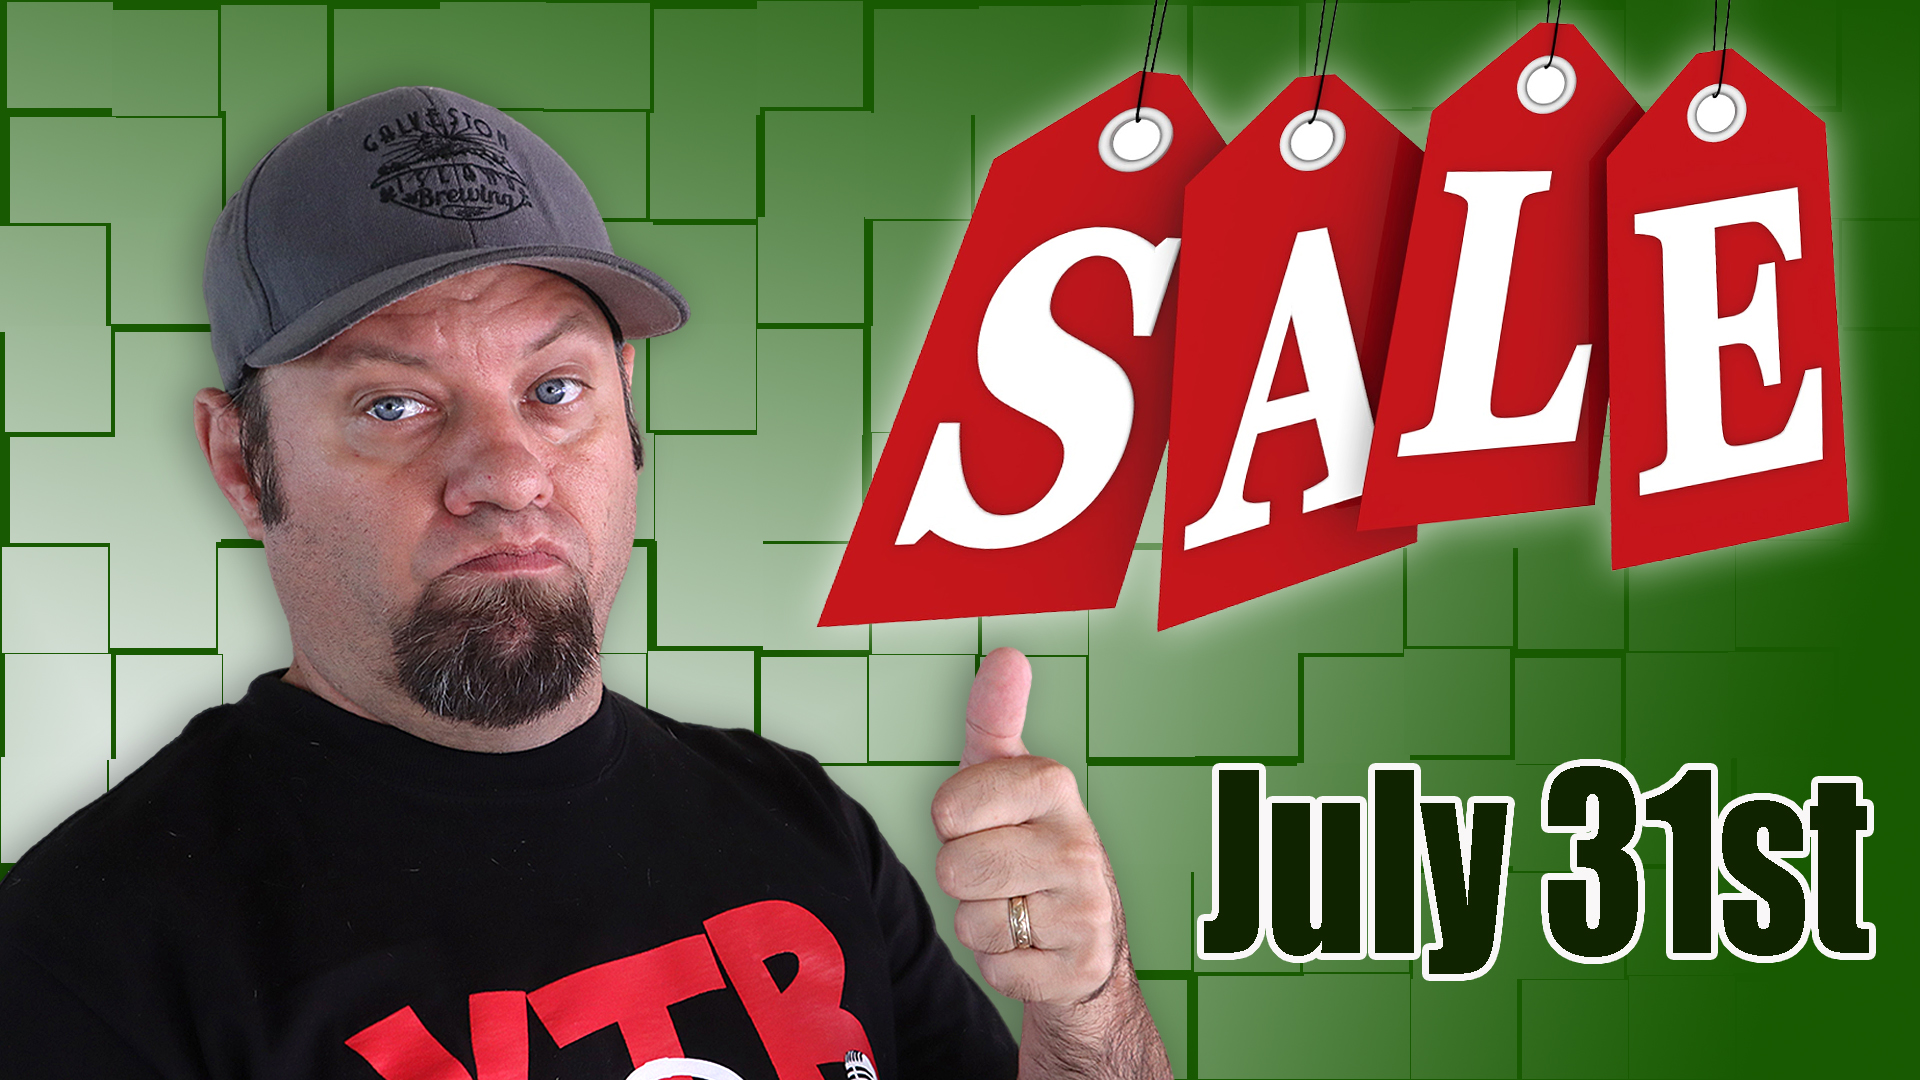 Episode 426: Ham Radio Shopping Deals and Specials for July 31st!